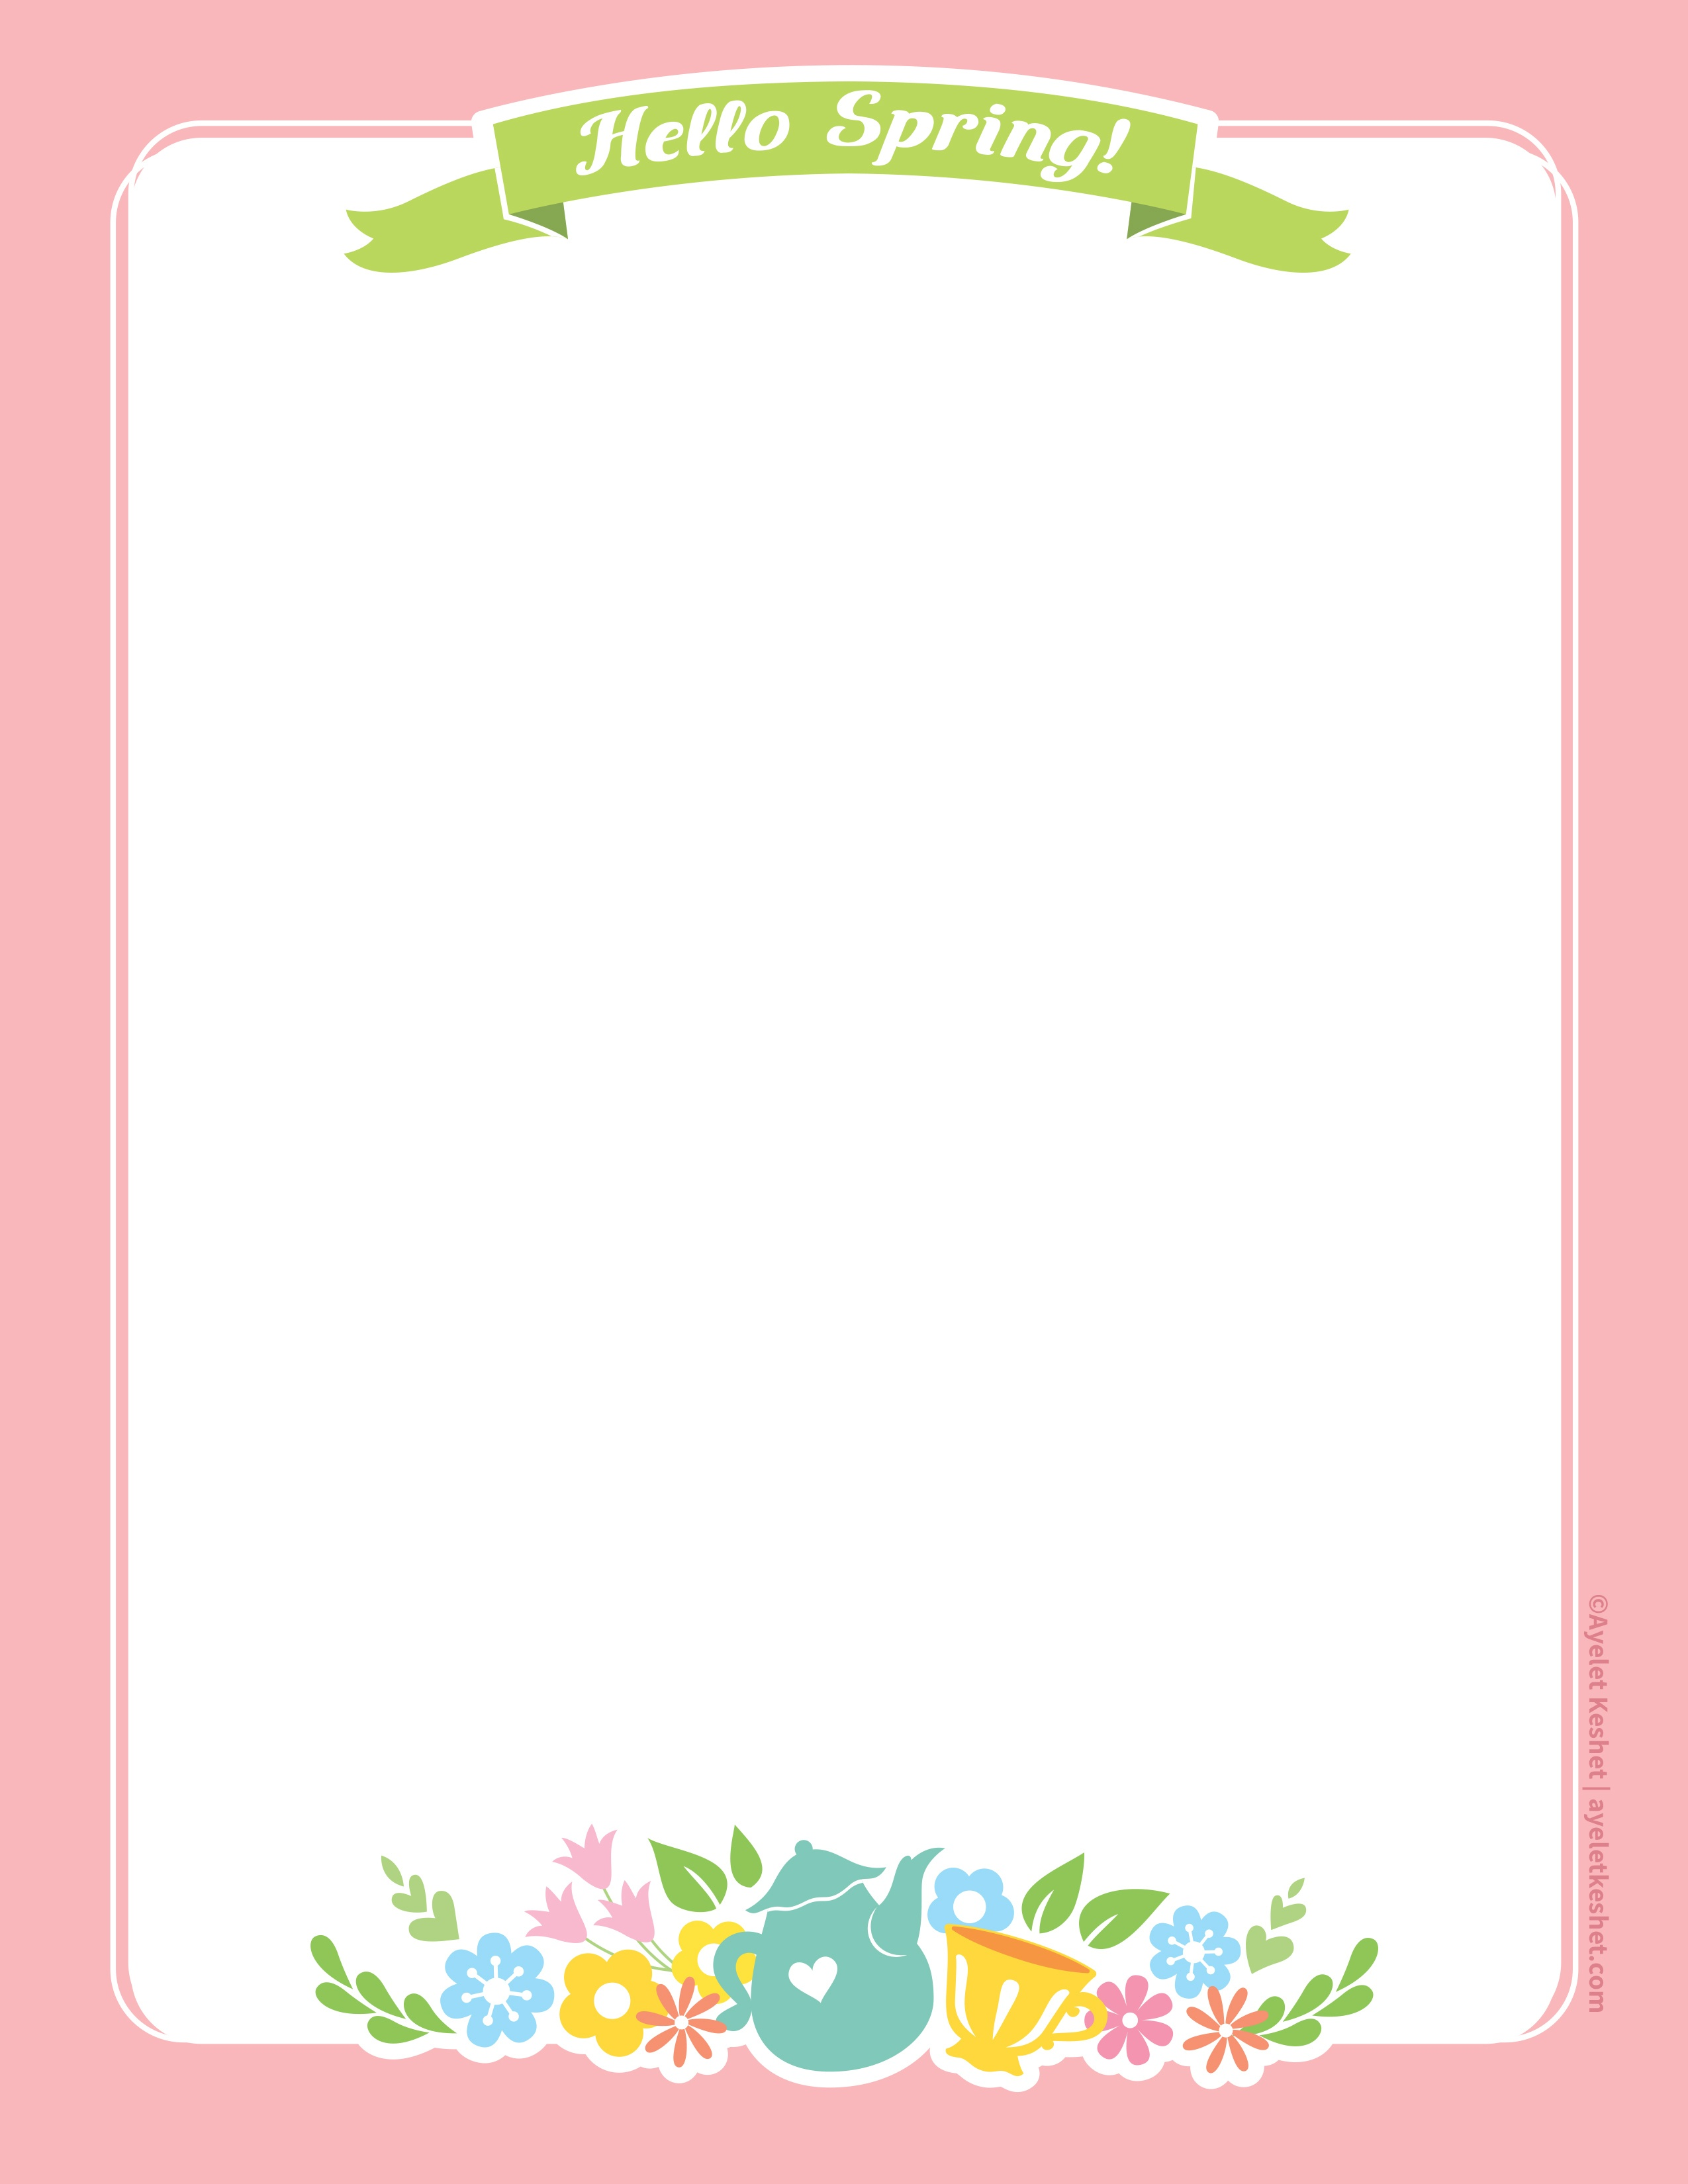 Lovely Free Printable Stationery Paper For Spring - Ayelet Keshet - Free Printable Stationery